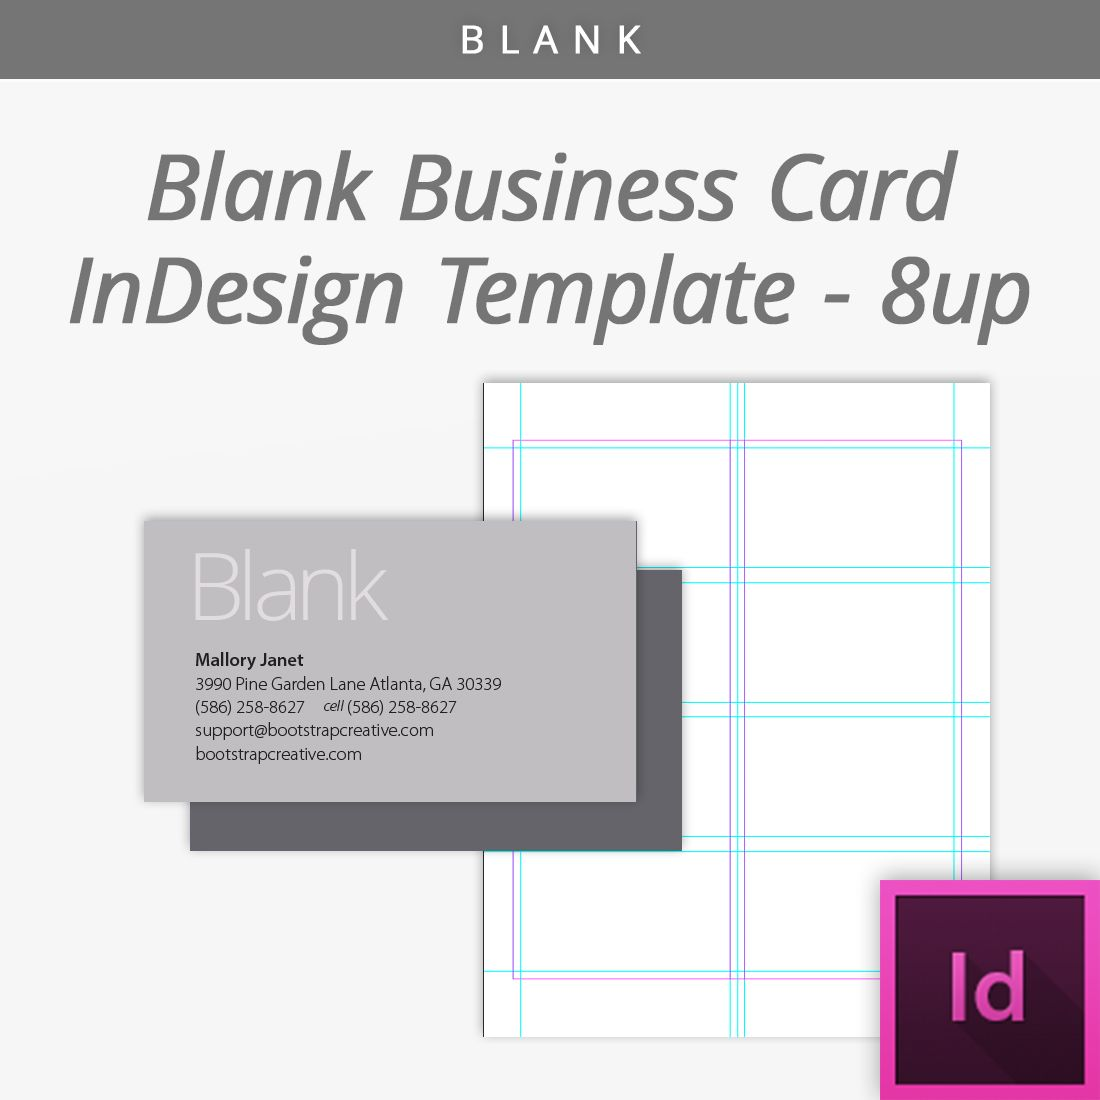 Blank indesign business card template 8 up free download blank indesign business card template 8 up free download designtemplate wajeb Gallery